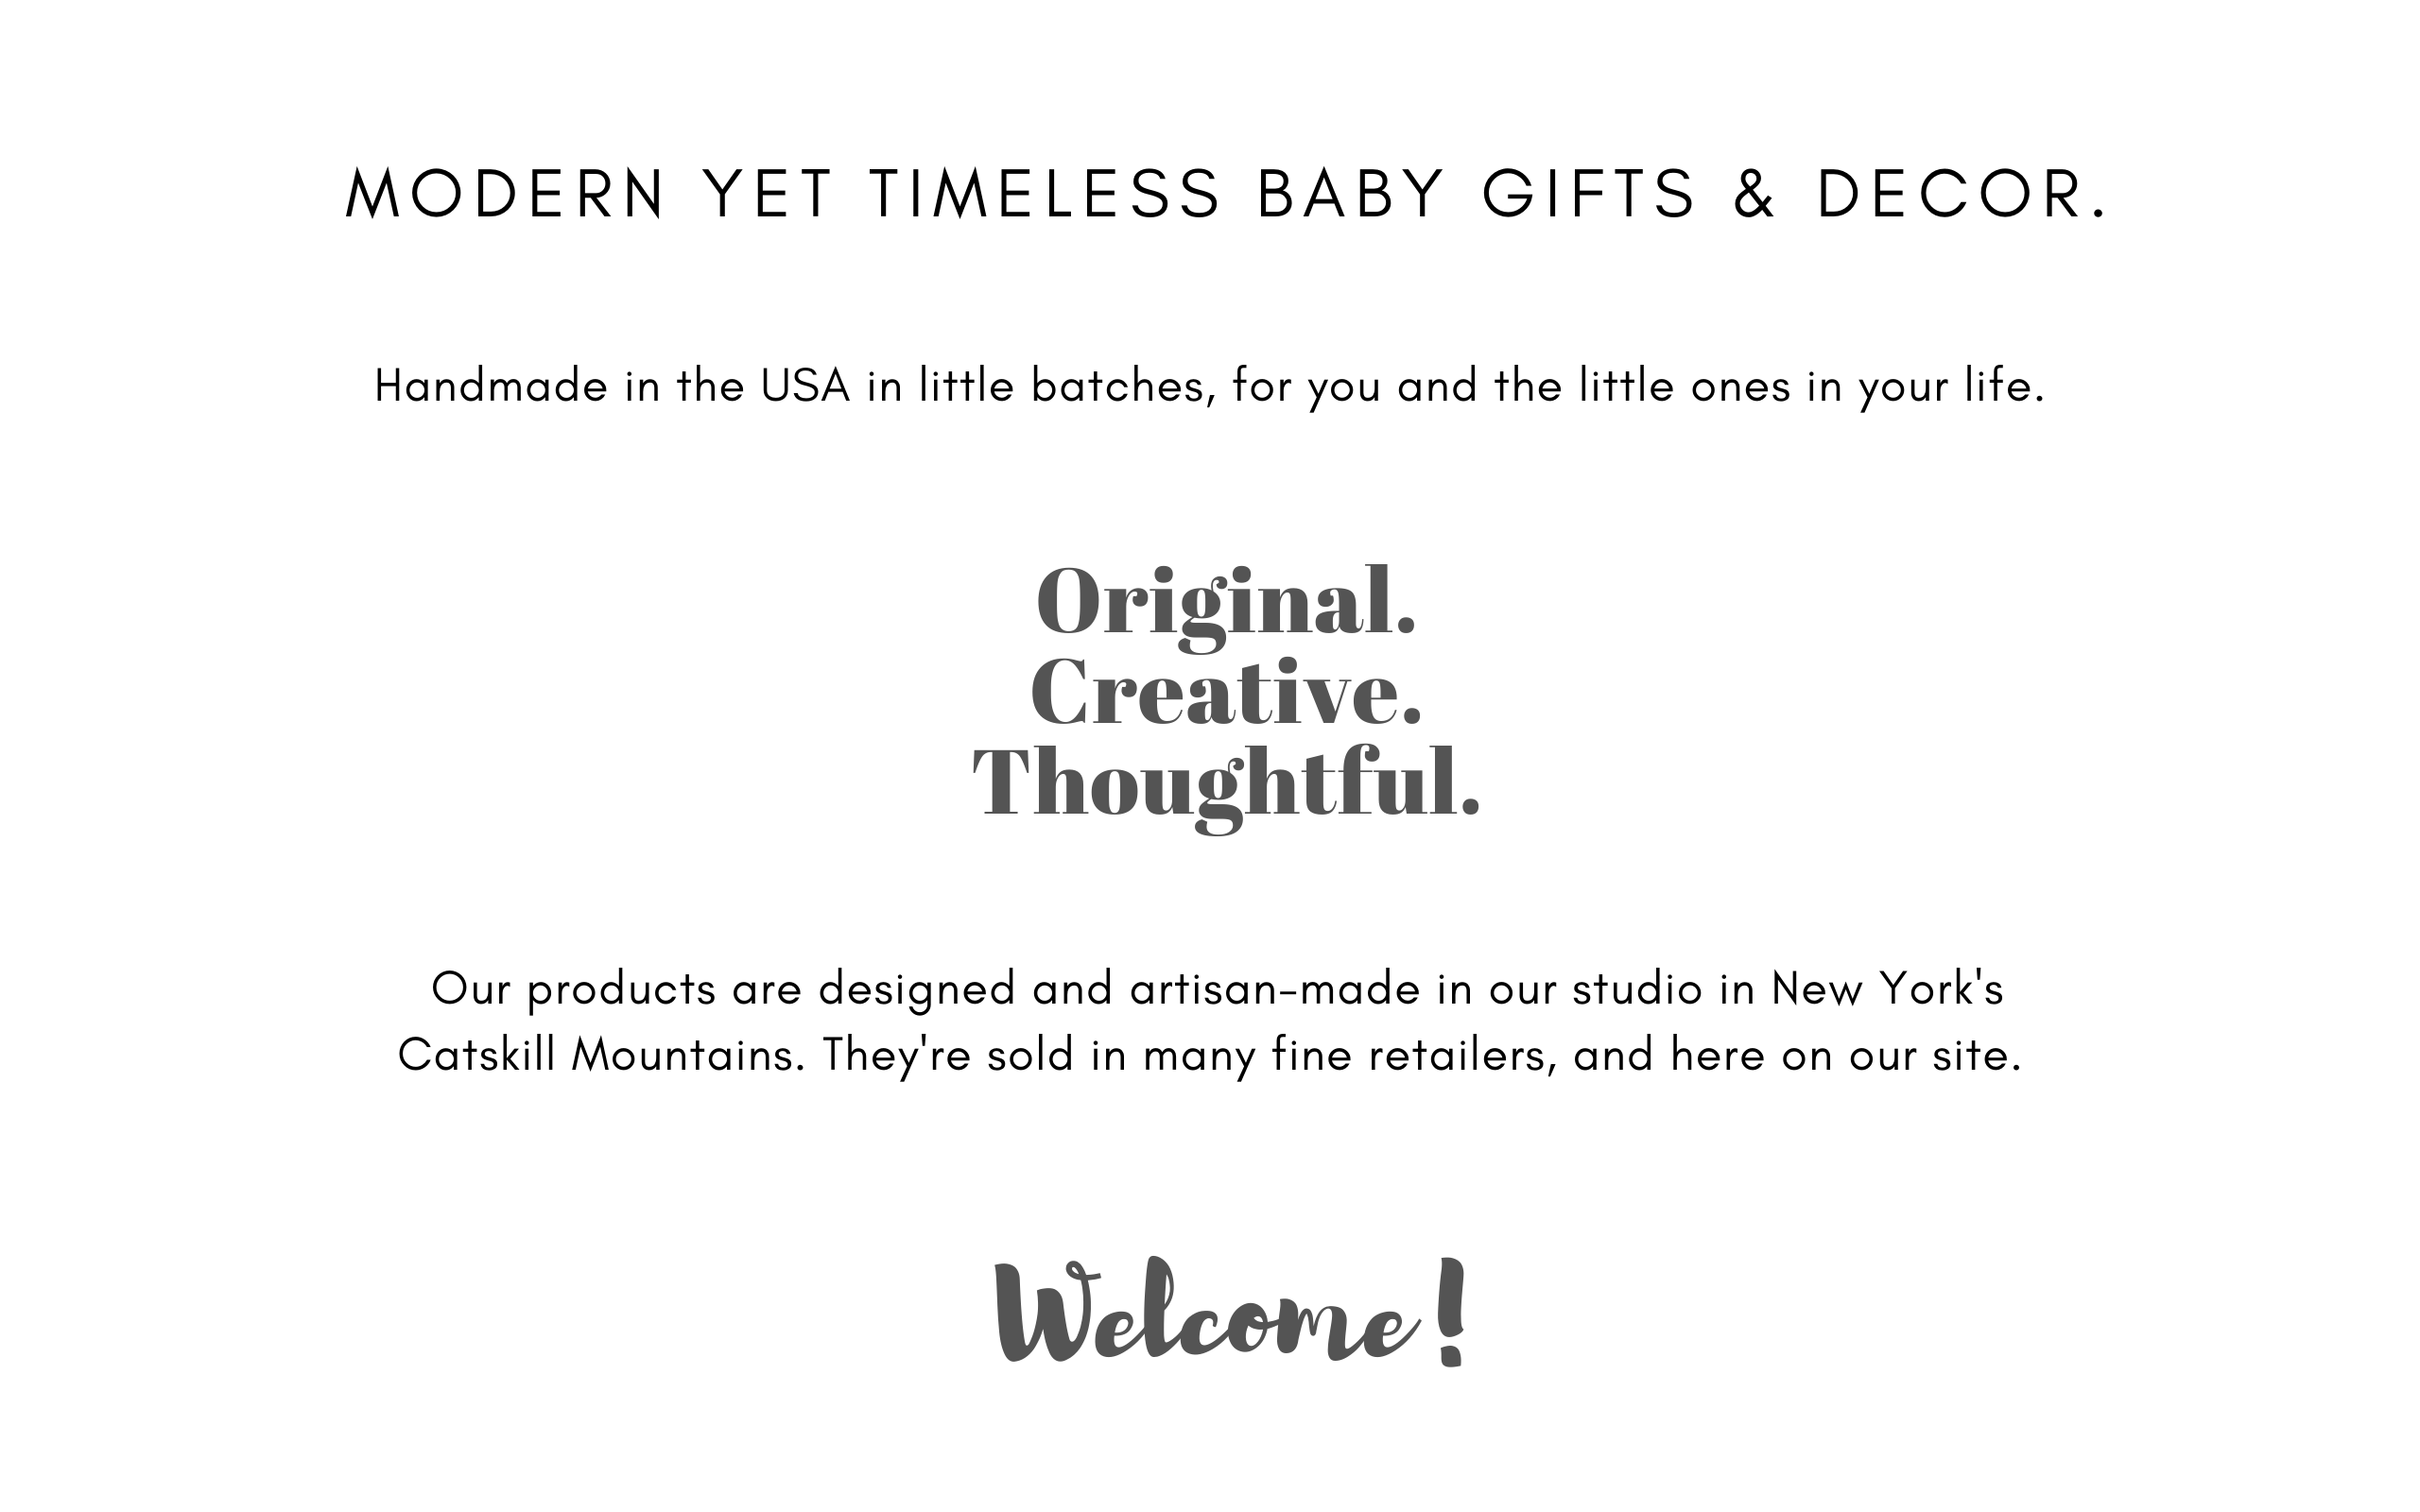 Modern yet timeless baby gifts, toddler gifts, nursery & kids room decor. Unique, creative, original, different. Handmade in the USA in little batches. Wooden music boxes, animal clocks, solar nightlights, custom & personalized childrens products designed and artisan-made in our studio in New York's Catskill Mountains.